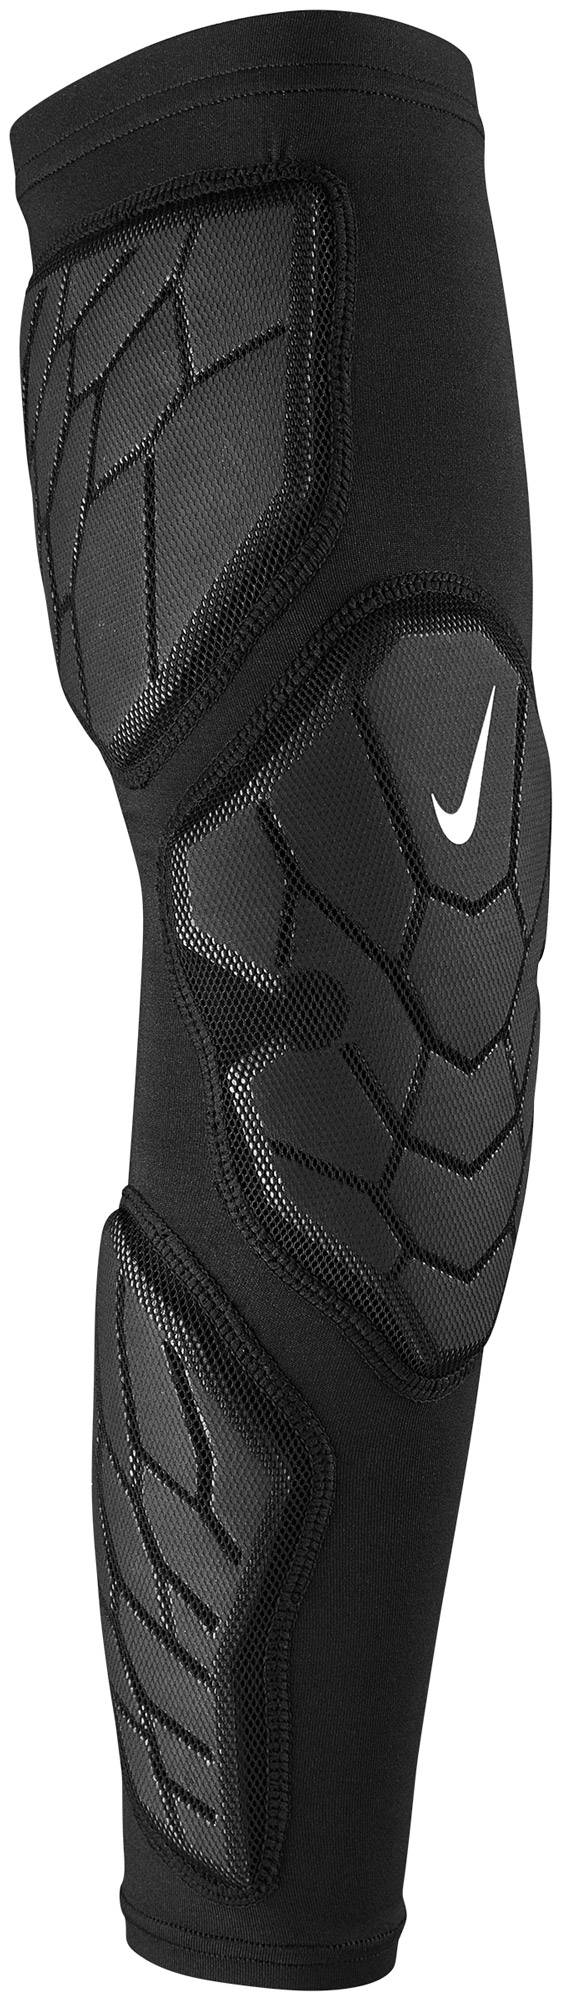 4f881807 Nike Pro Hyperstrong Padded Arm Sleeve 3.0